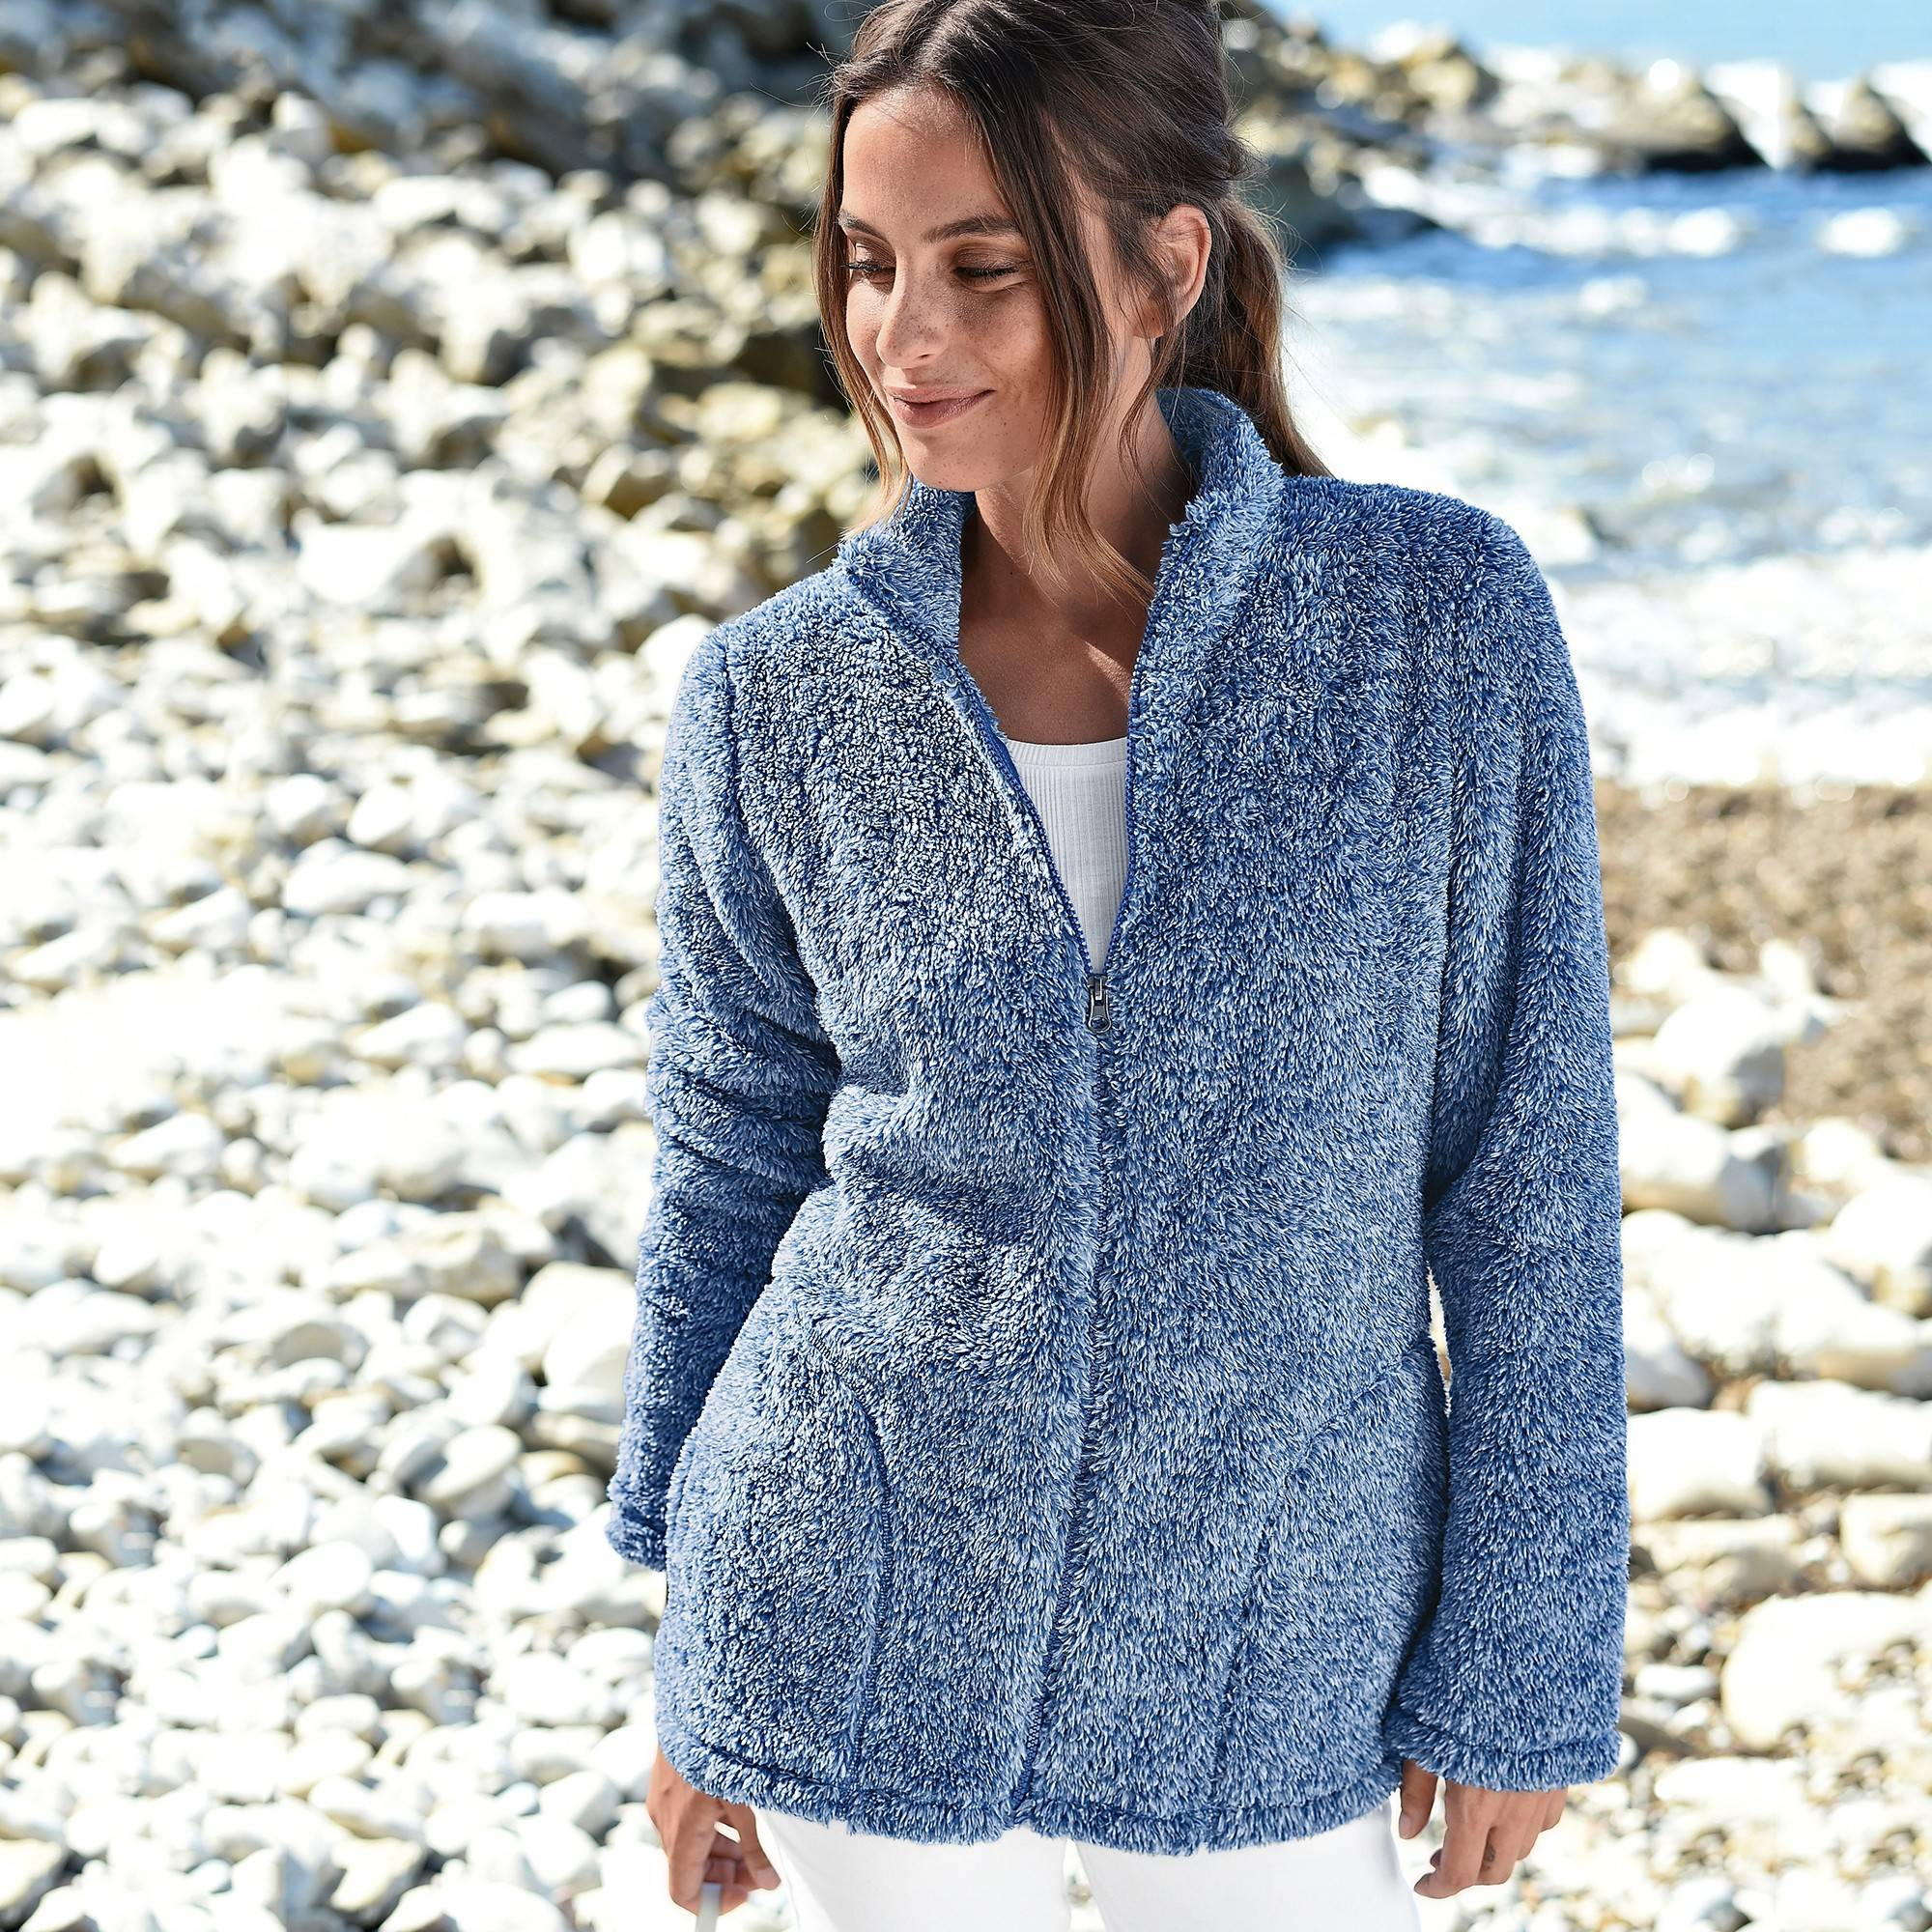 Casual Collection Veste maille peluche - Bleu - Taille : 50 - Blancheporte